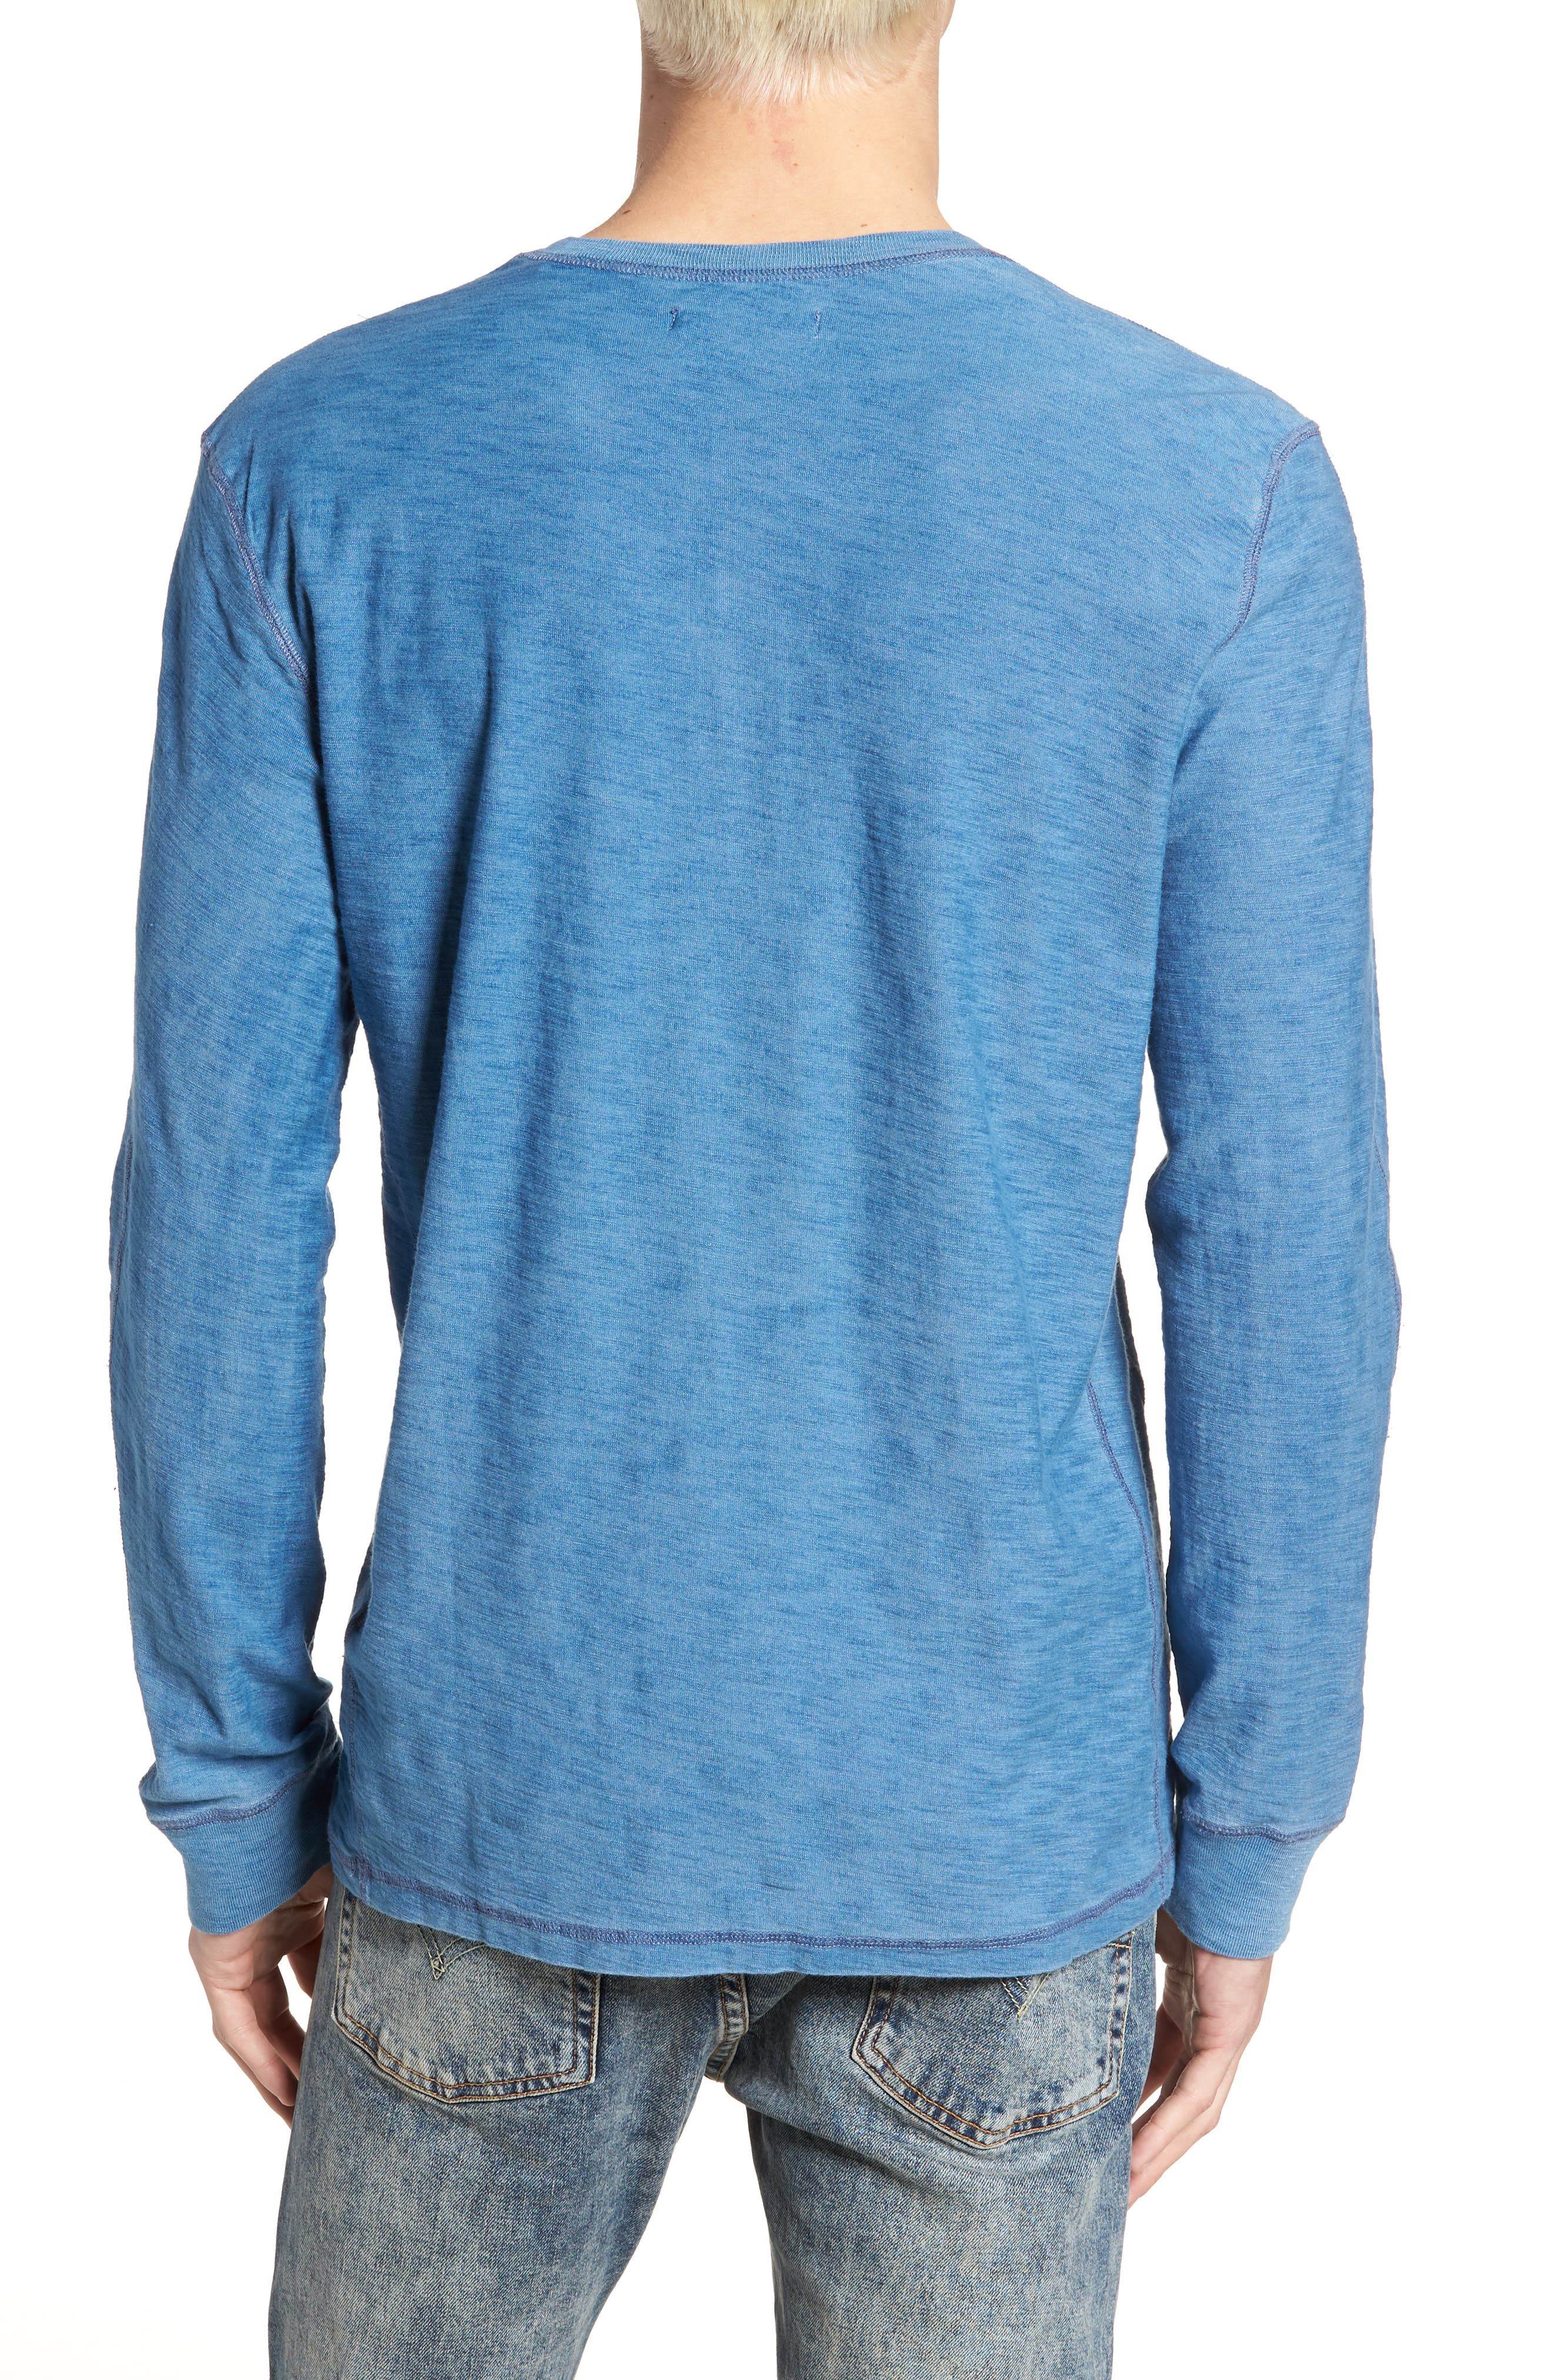 LEVI'S<SUP>®</SUP> MADE & CRAFTED<SUP>™</SUP>,                             Henley,                             Alternate thumbnail 2, color,                             420